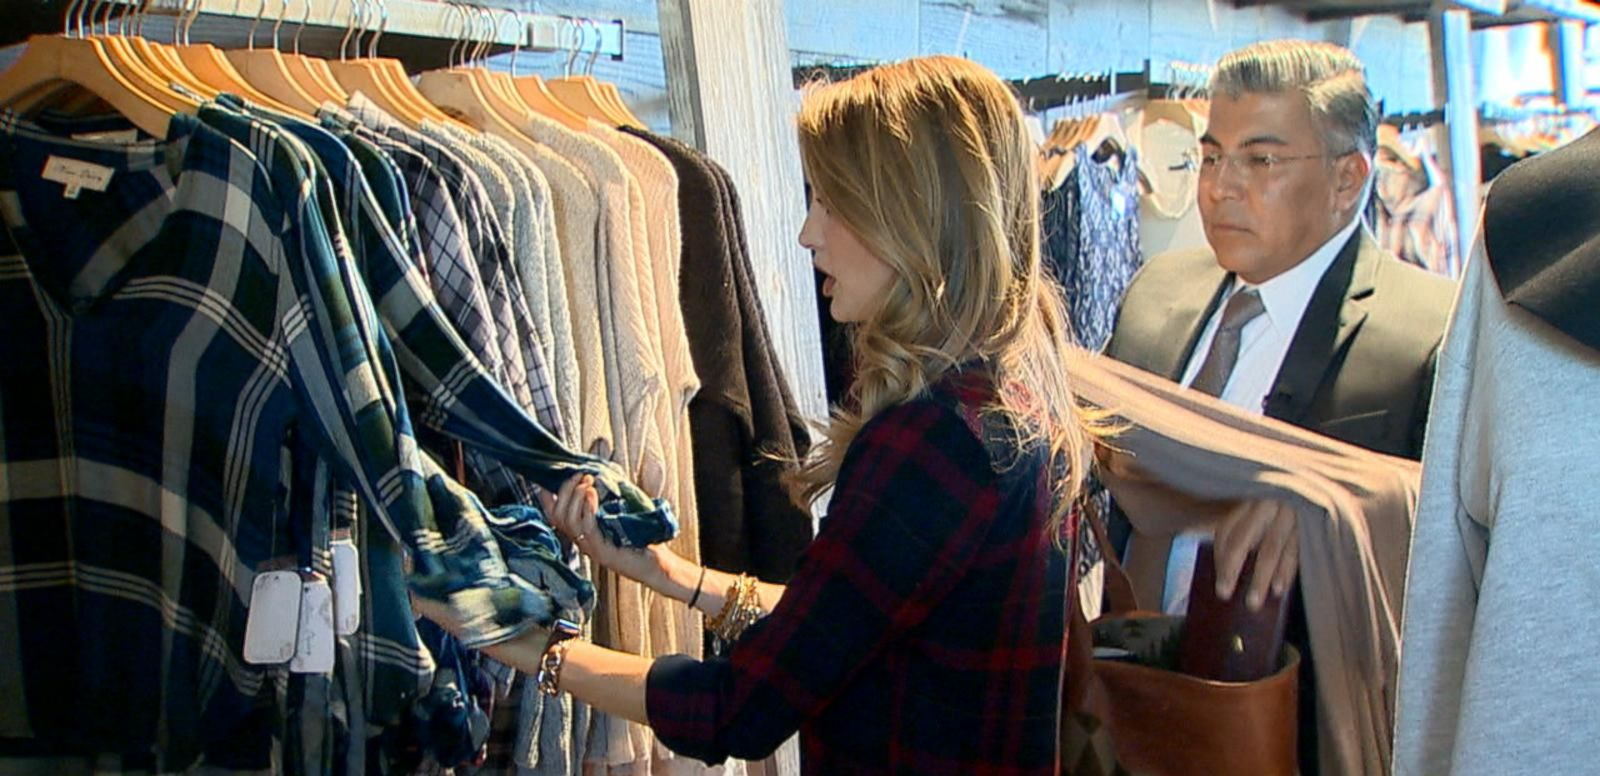 VIDEO: Consumer Alert for Shoppers Around Holiday Season